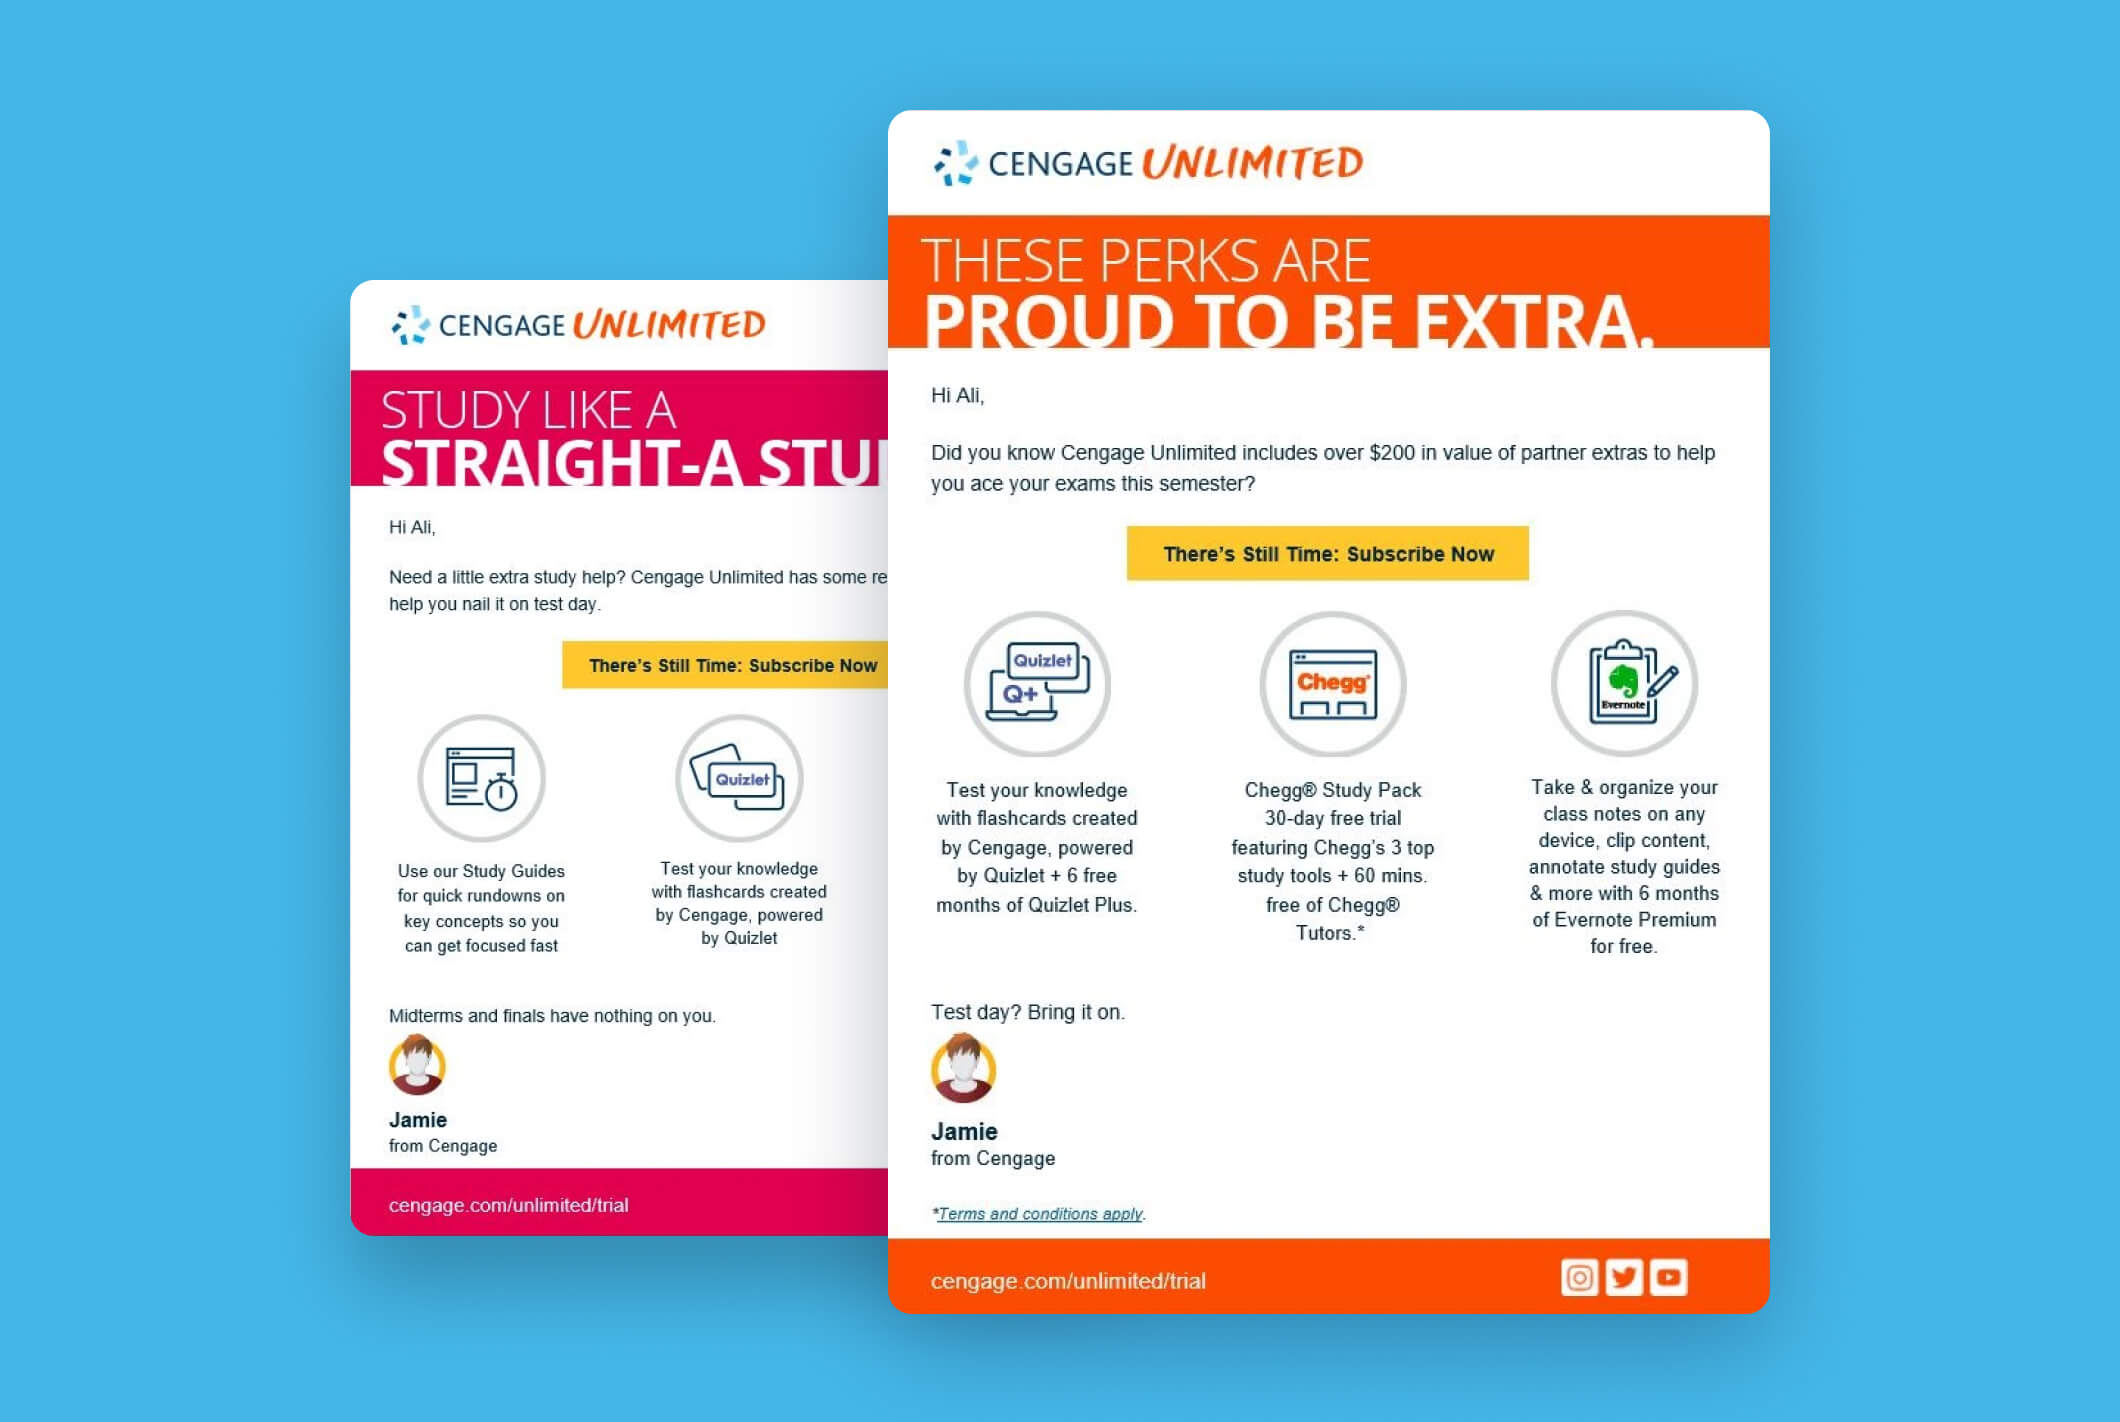 Cengage Unlimited customer-centric emails